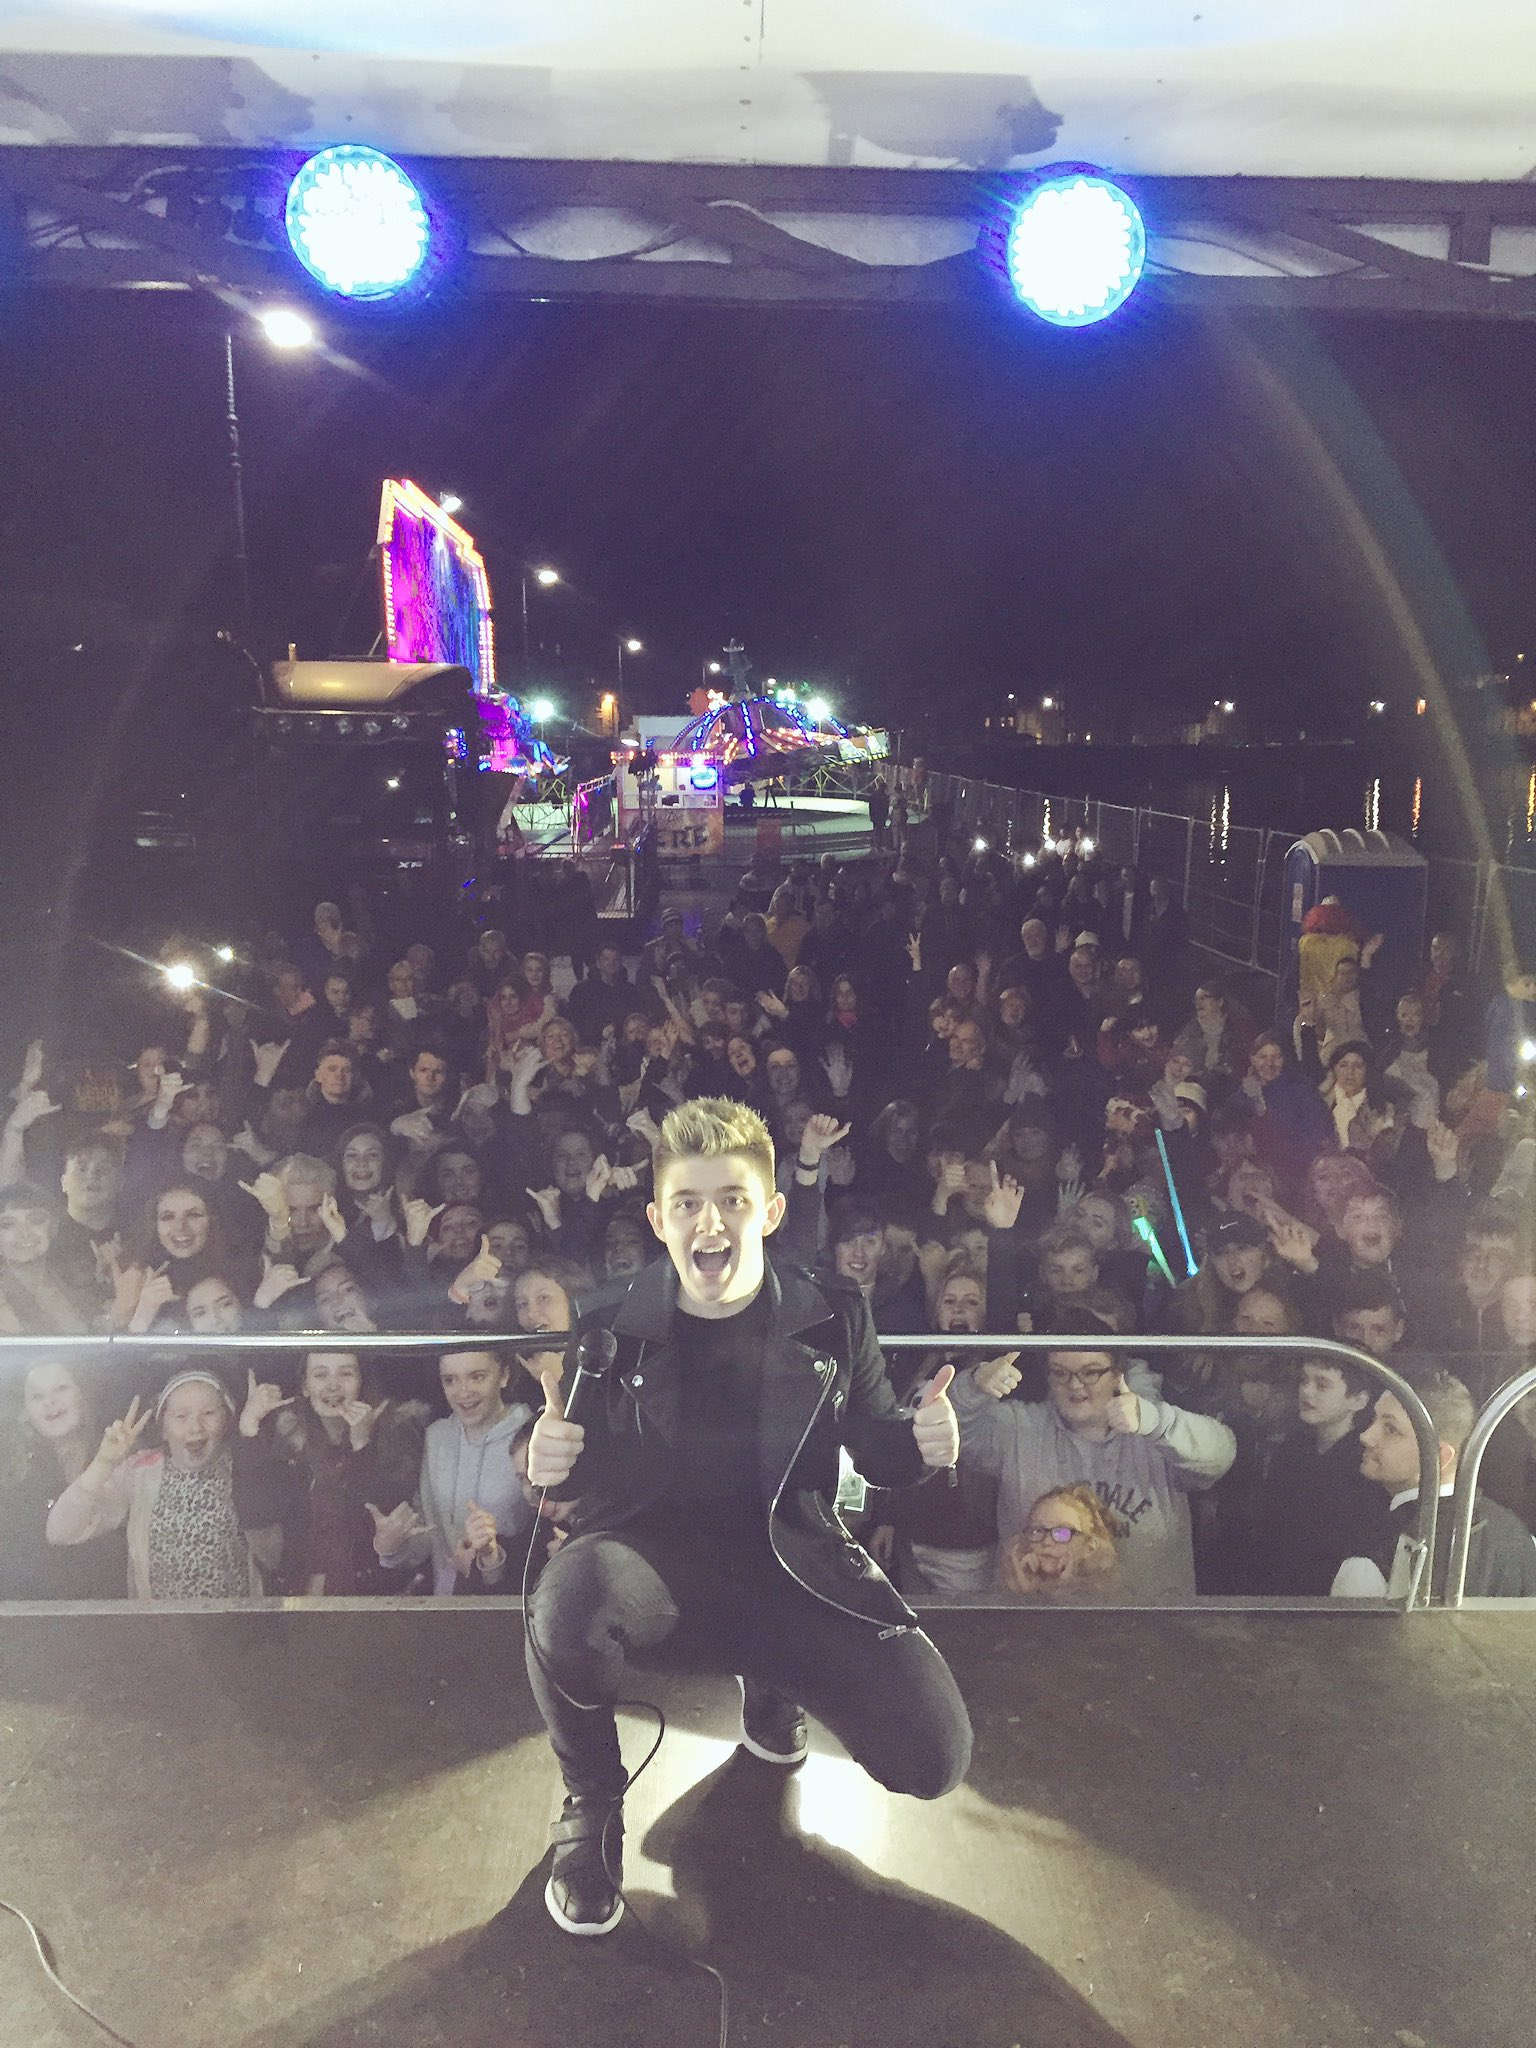 Thanks again to Rock the Prom for having me back again .. another amazing show .. see you all soon 😁 https://t.co/fAiE62YI2h